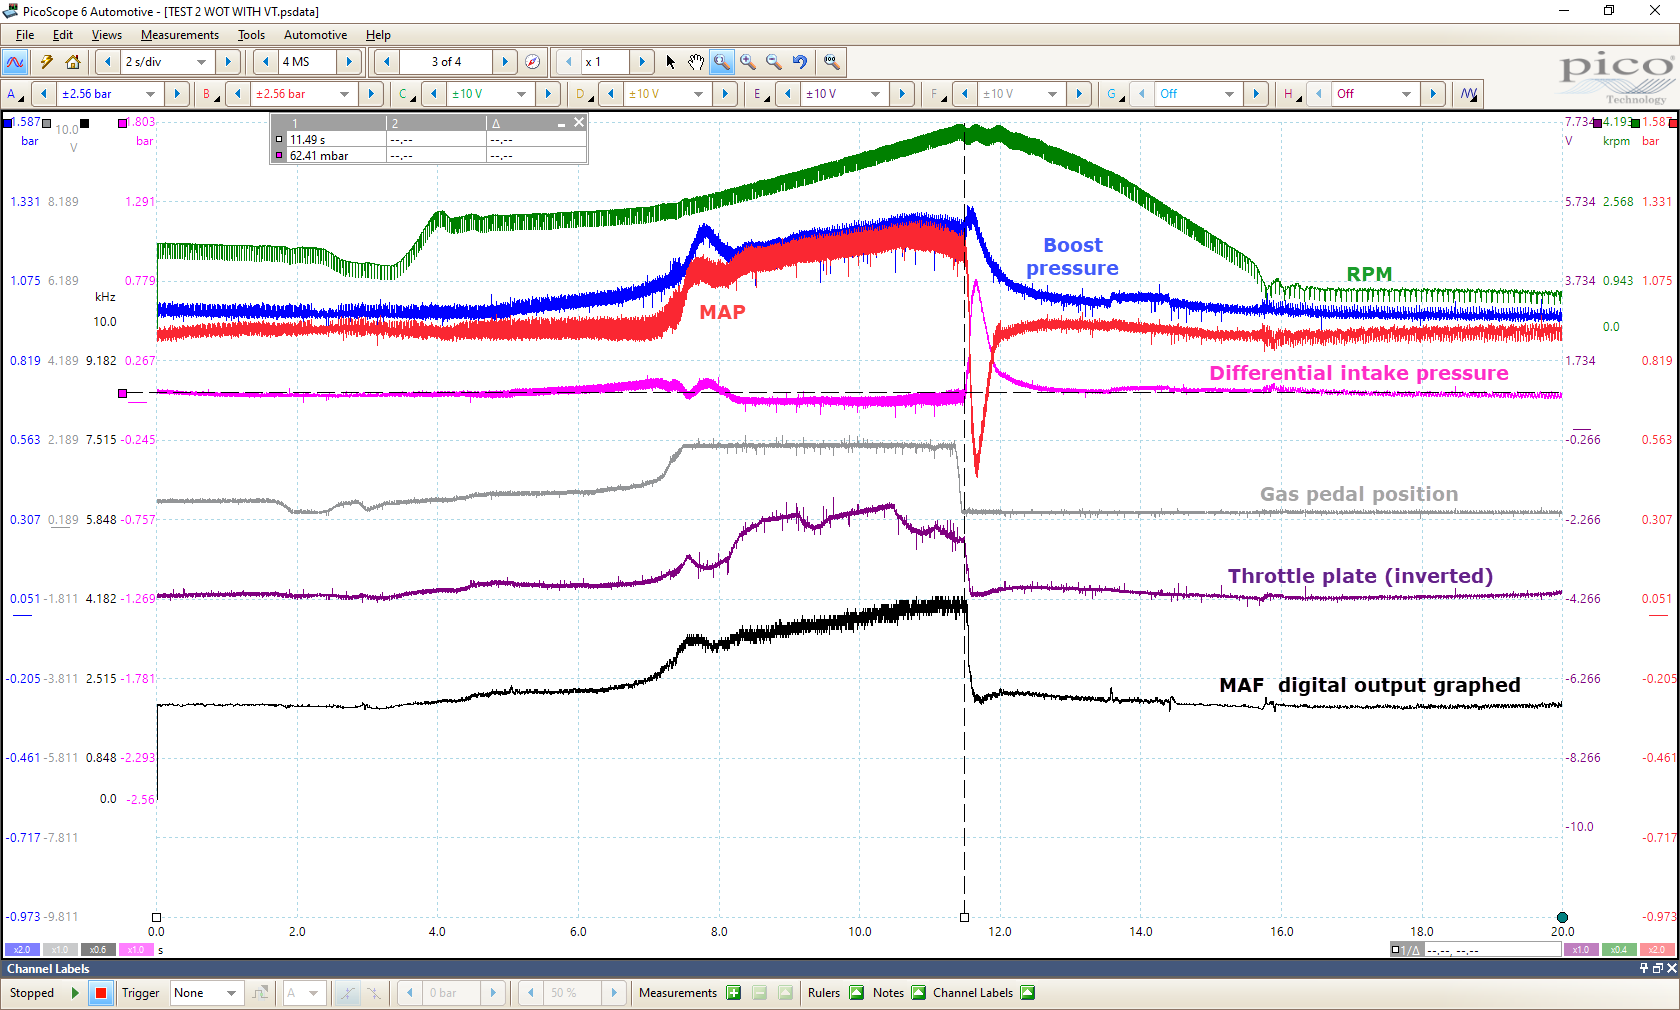 Screenshot from PicoScope 6 Automotive showing varying differential pressure as the gas pedal is depressed and released.